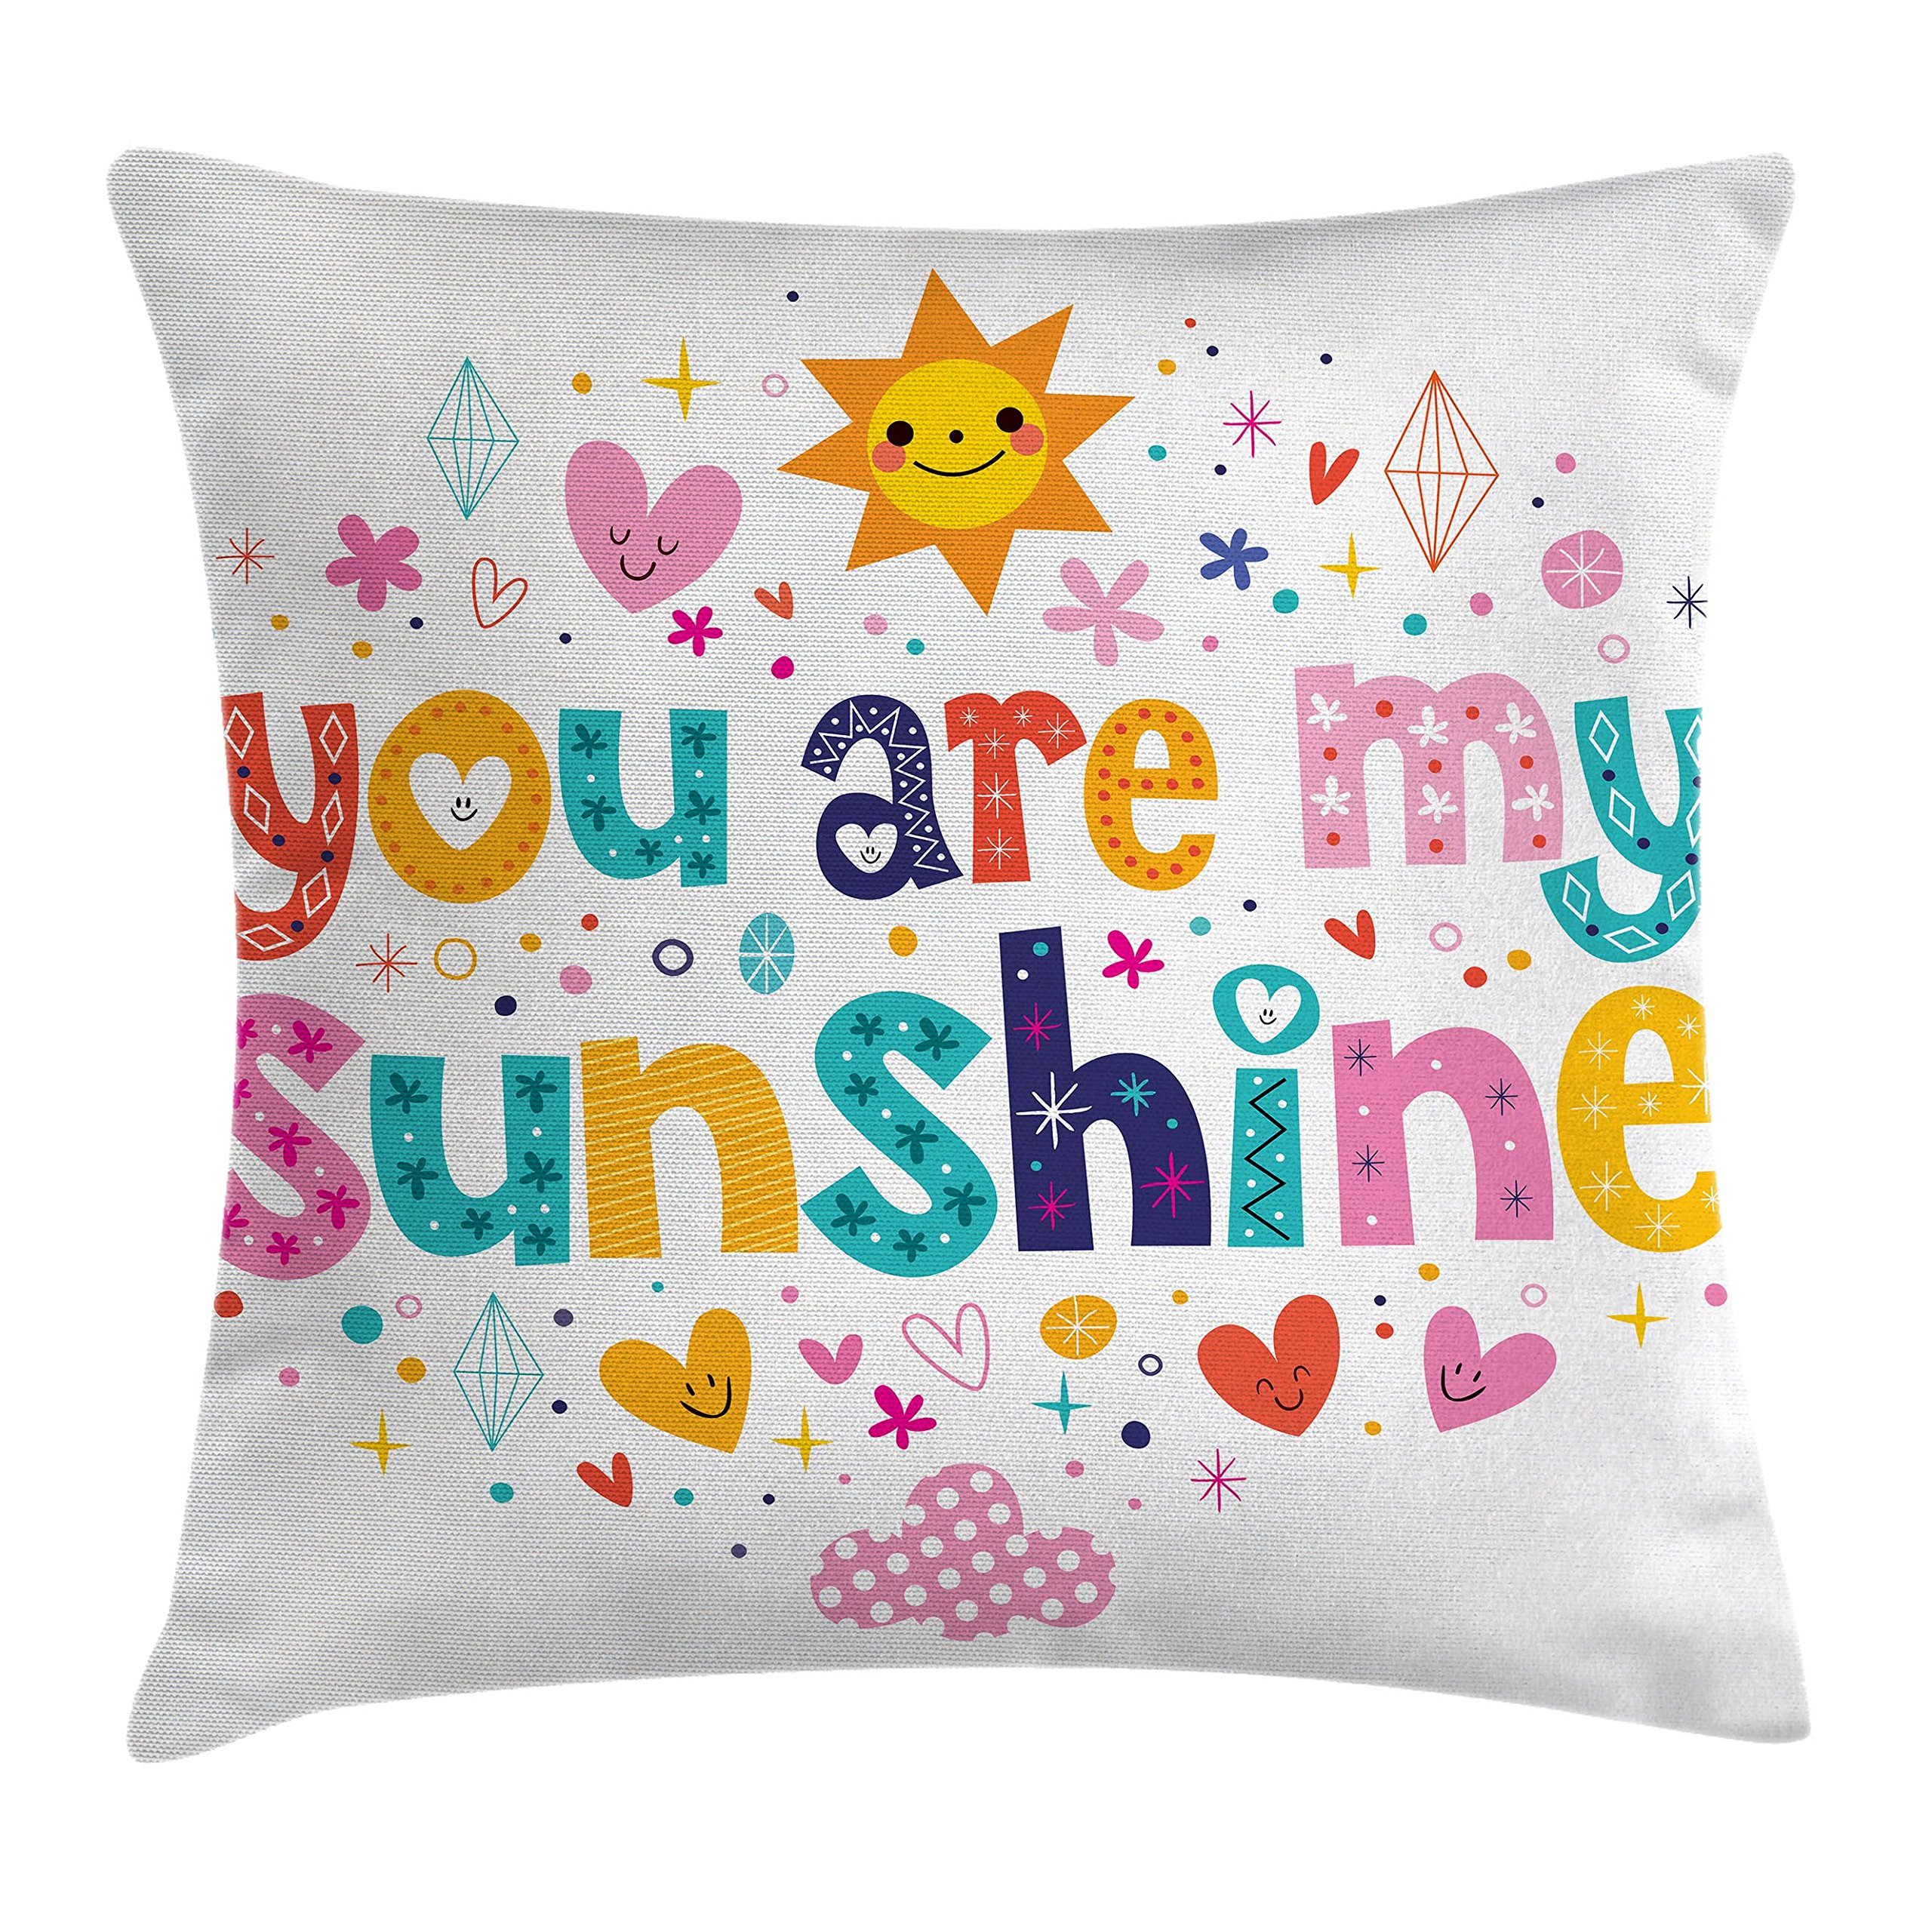 Ambesonne Quotes Decor Throw Pillow Cushion Cover, Cute Love Text Print Made by Fun Happy Animal and Heart Figures Kids Nursery Theme, Decorative Square Accent Pillow Case, 16 X 16 Inches, Multi